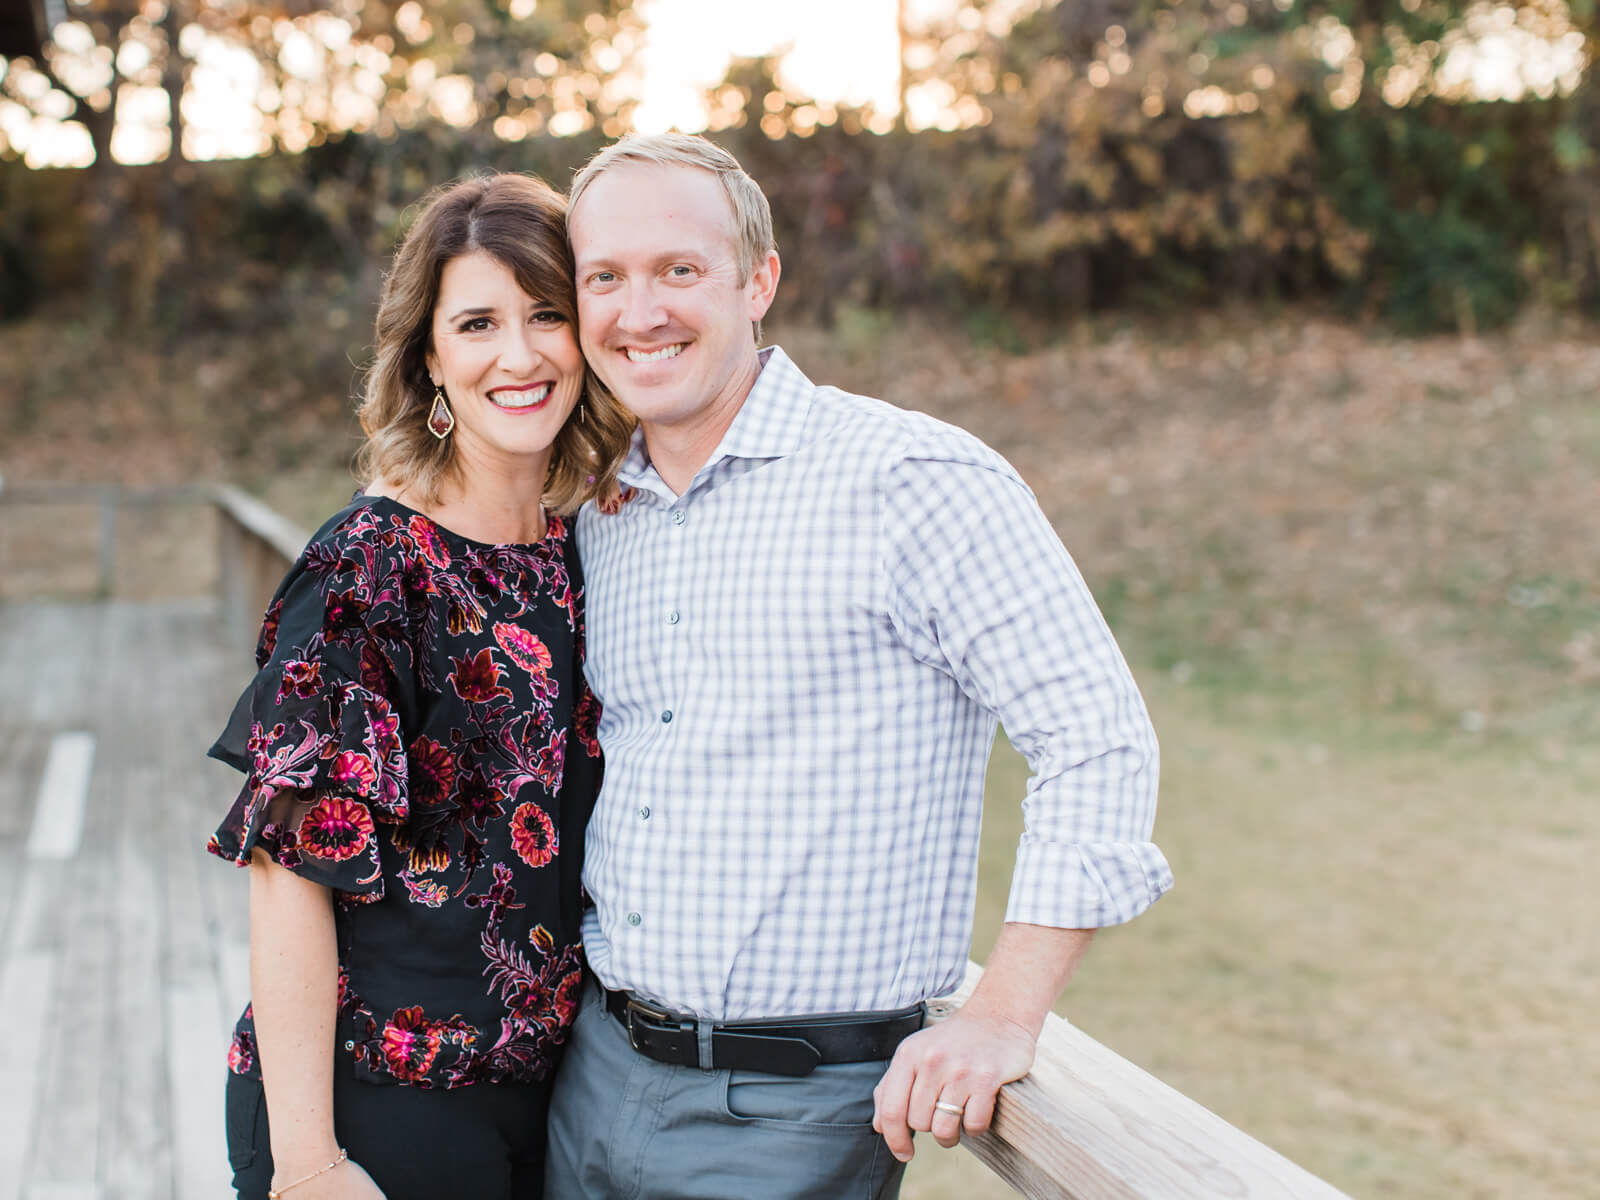 Ditmore Family mini session colleyville, texas-7.jpg